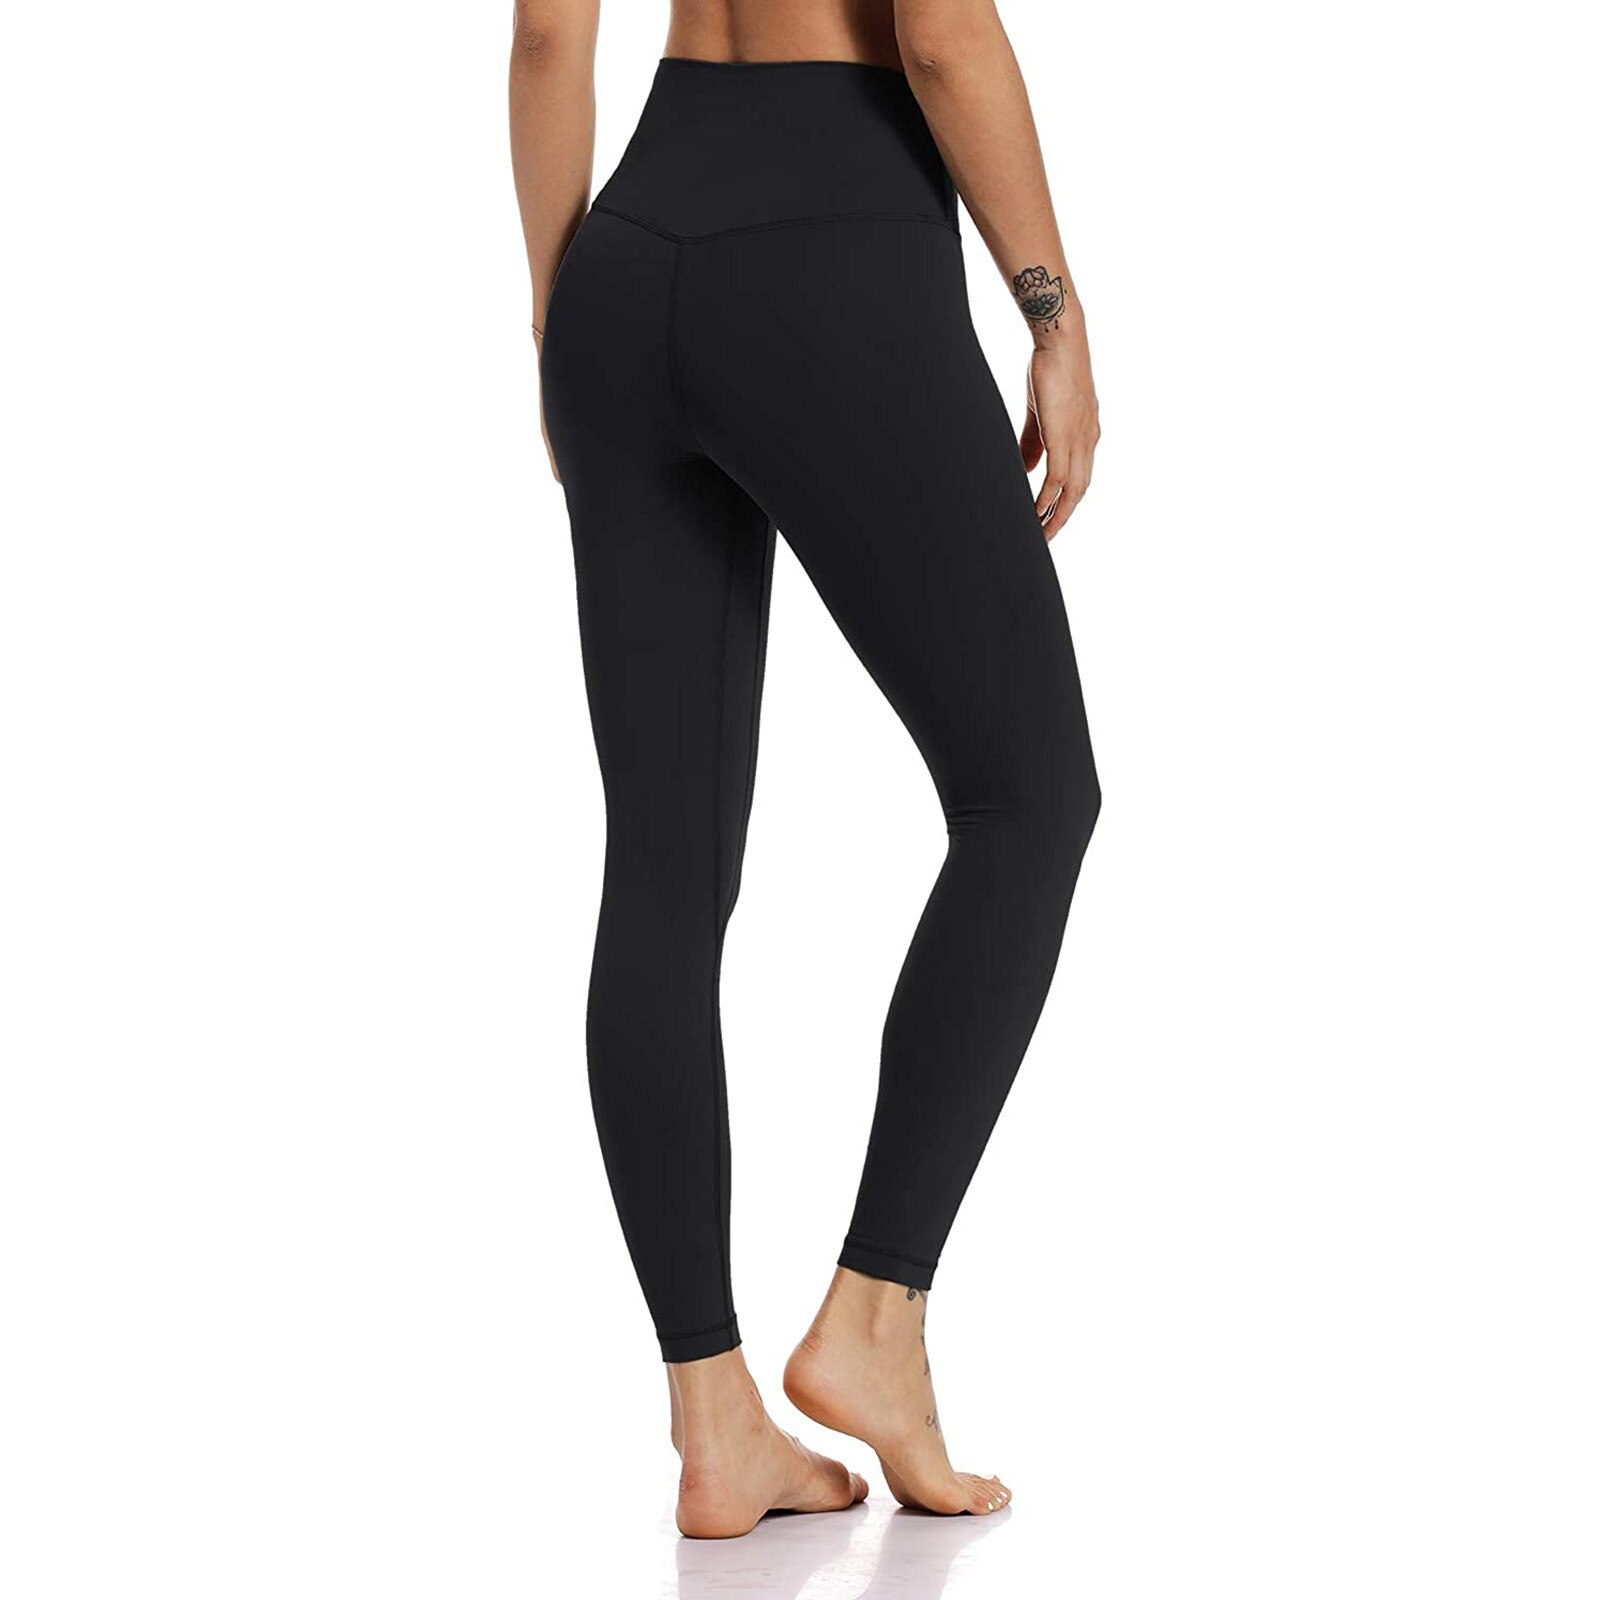 High waist yoga exercise Leggings women's Yoga Pants fitness gym solid color tights 2021 sportswear pants Running Yoga